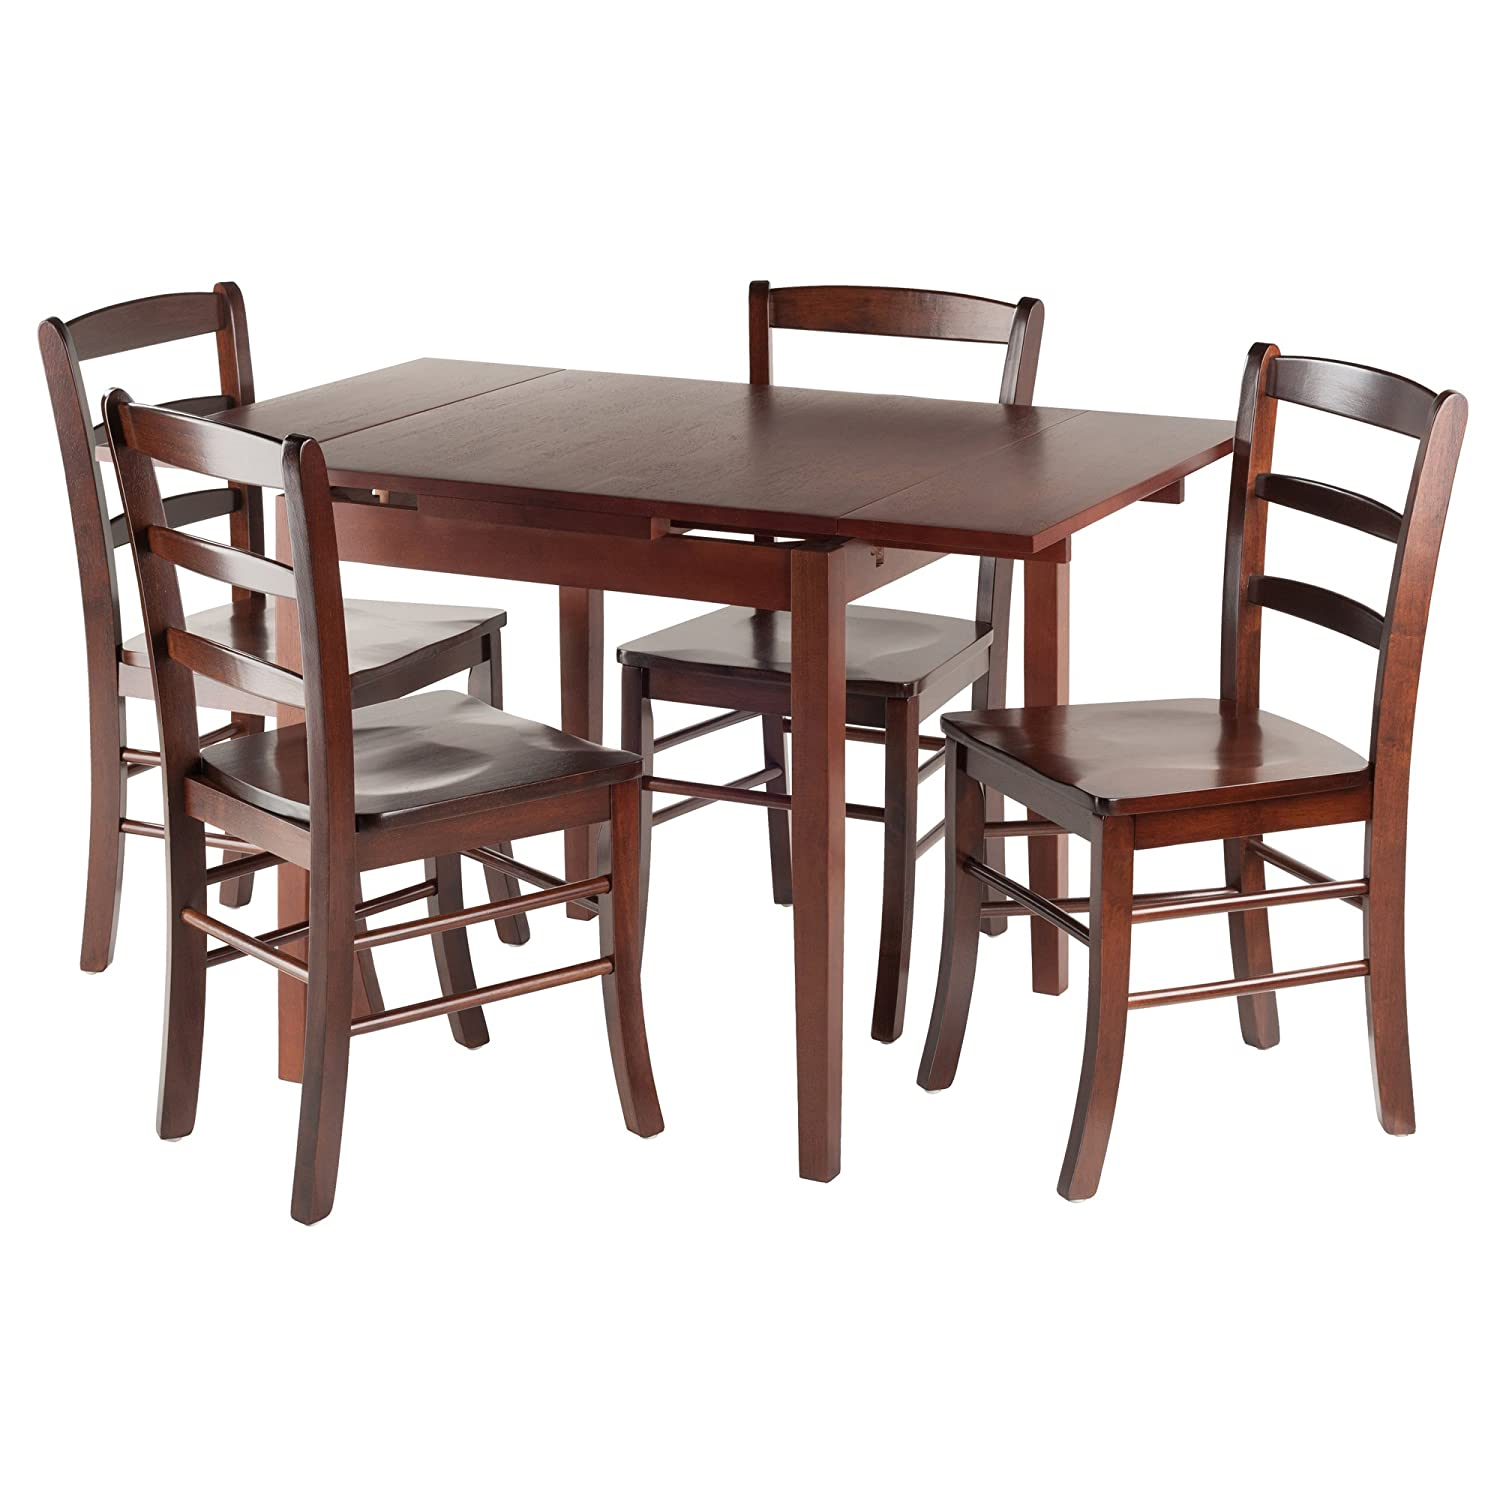 Amazon Winsome Wood Pulman 5 Piece Set Extension Table with